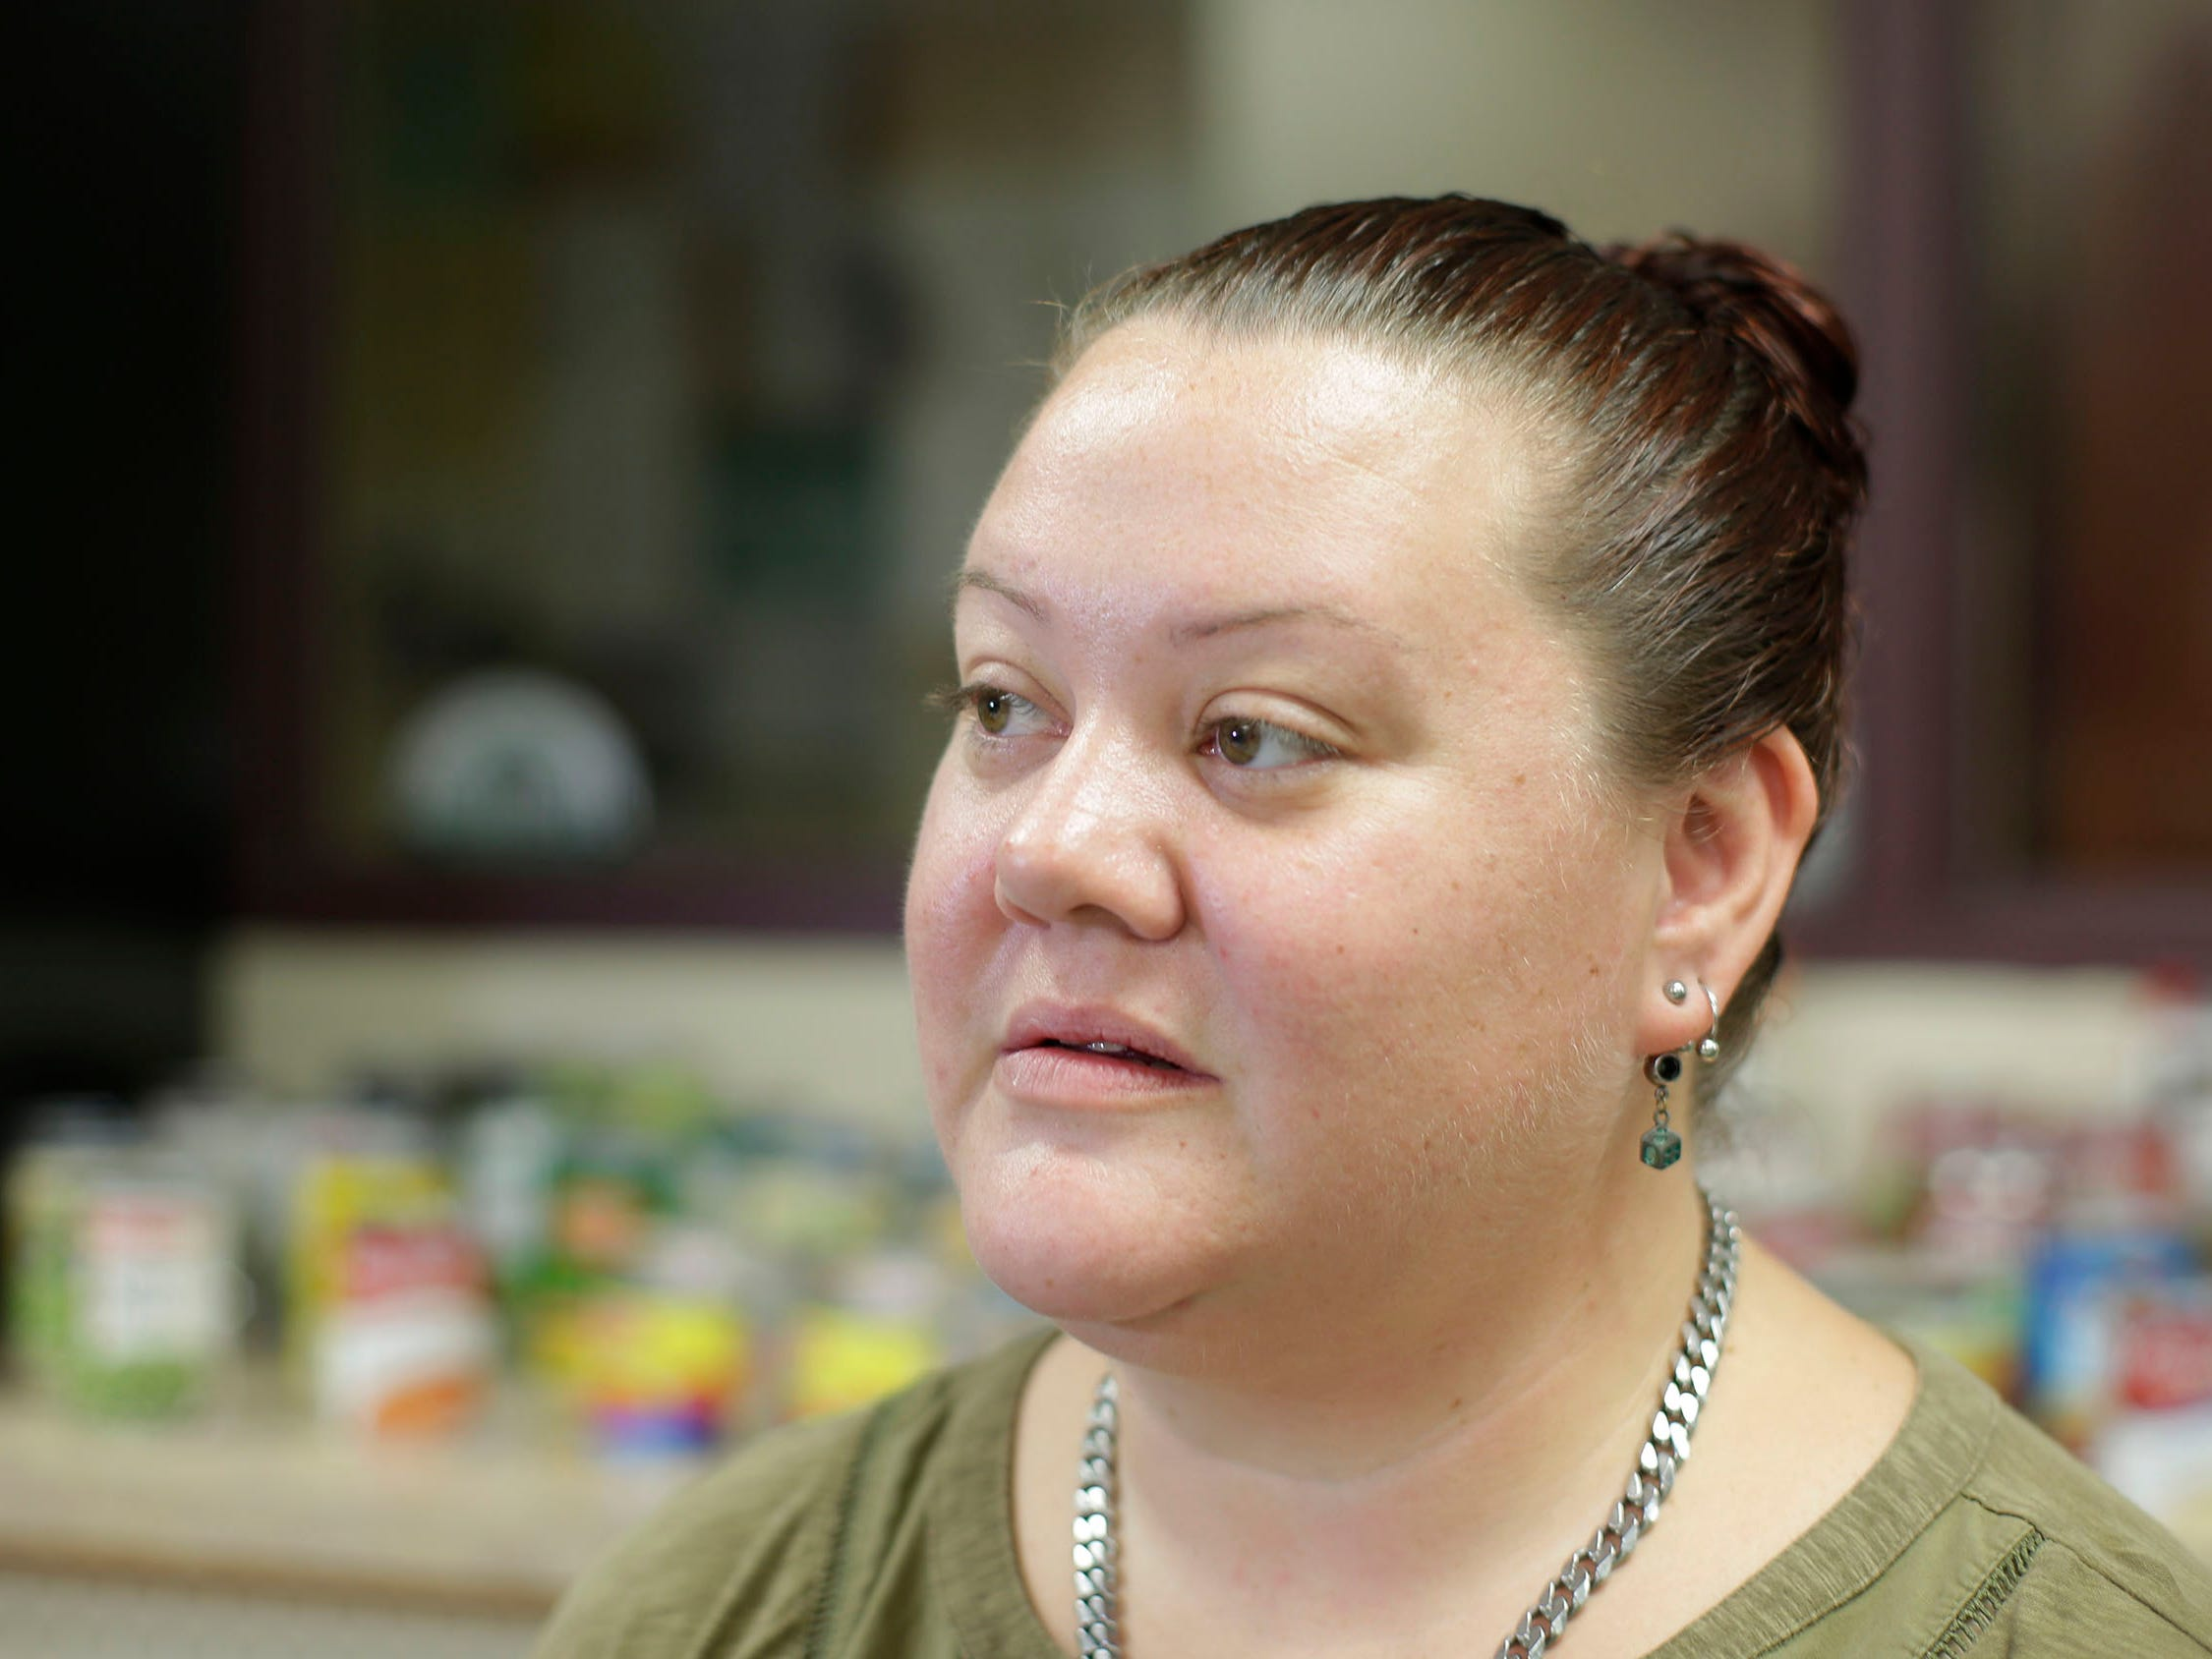 Sheboygan Salvation Army food pantry recipient Rose Hauch, of Sheboygan, Wis., speaks to the media about how the food pantry makes a difference in her life, Thursday, September 20, 2018, in Sheboygan, Wis.  Hauch is on a fixed income and the pantry helps her with her food needs.